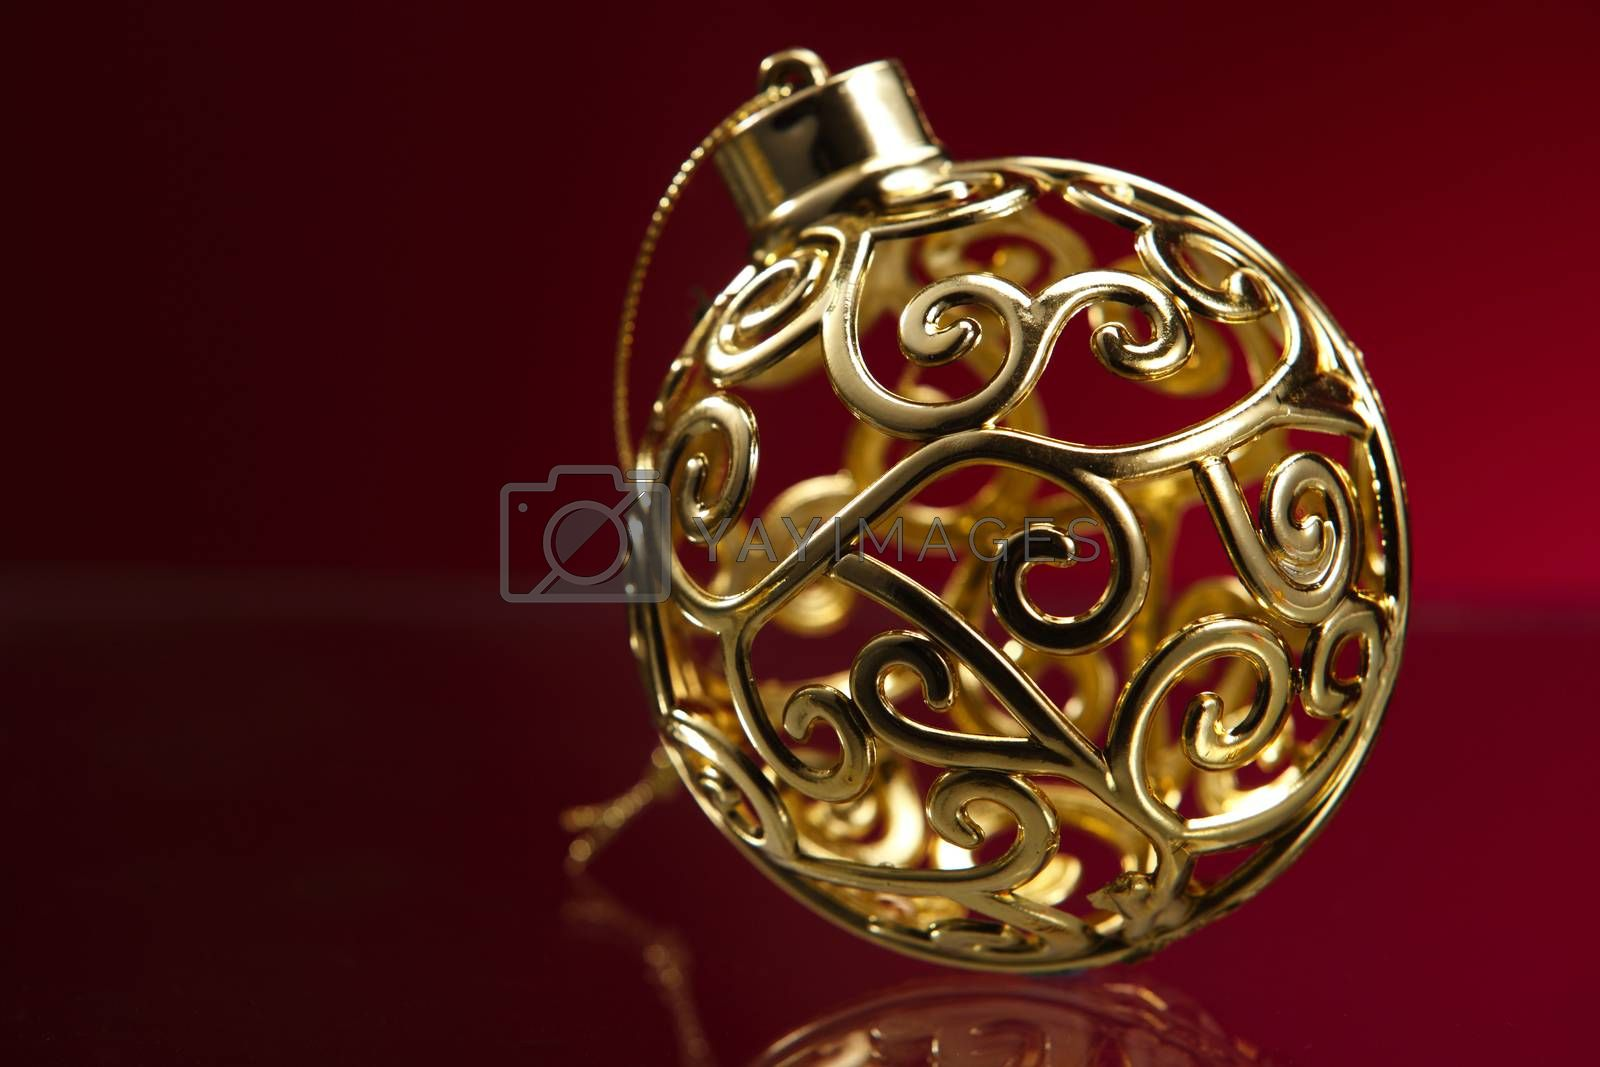 Christmas Ornament on the red background